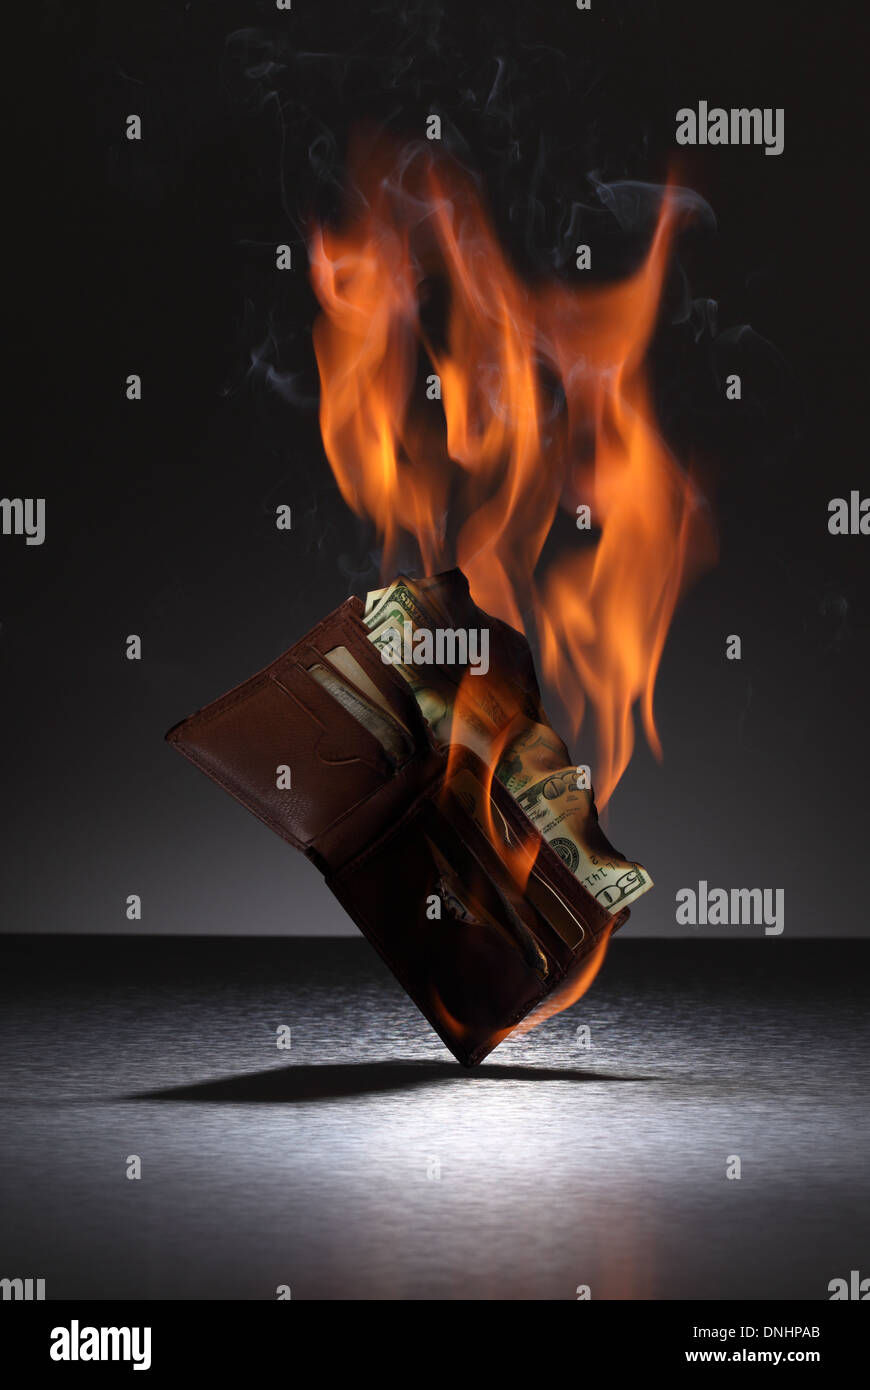 A brown leather wallet filled with credit cards and money on fire. Stock Photo